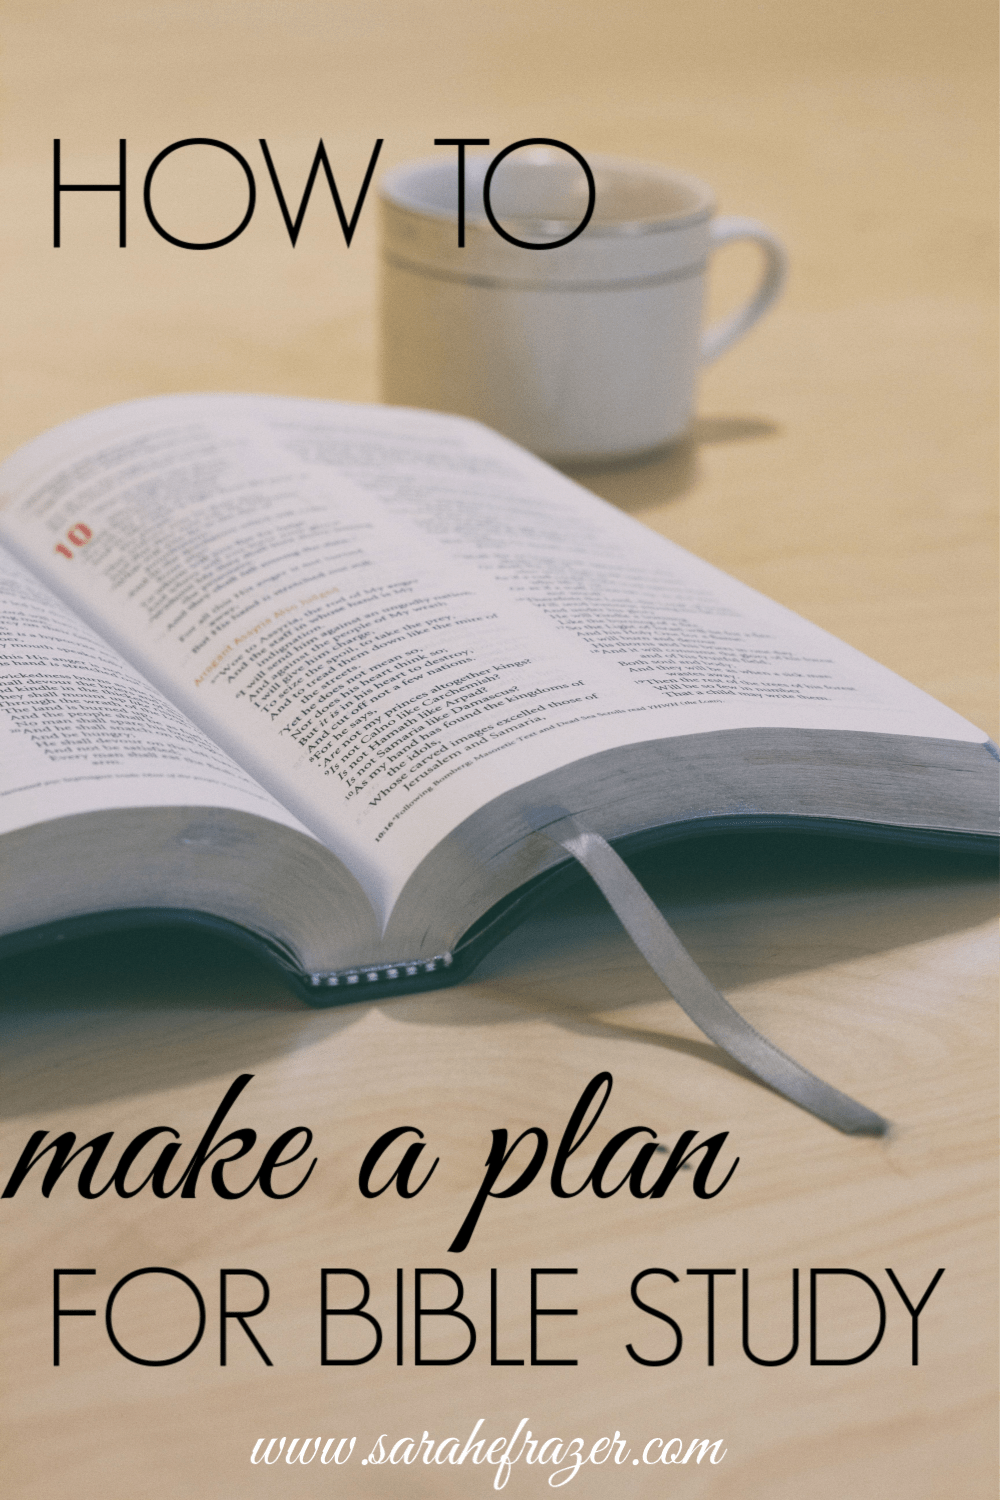 How to Study the Bible for Beginners – Making a Plan